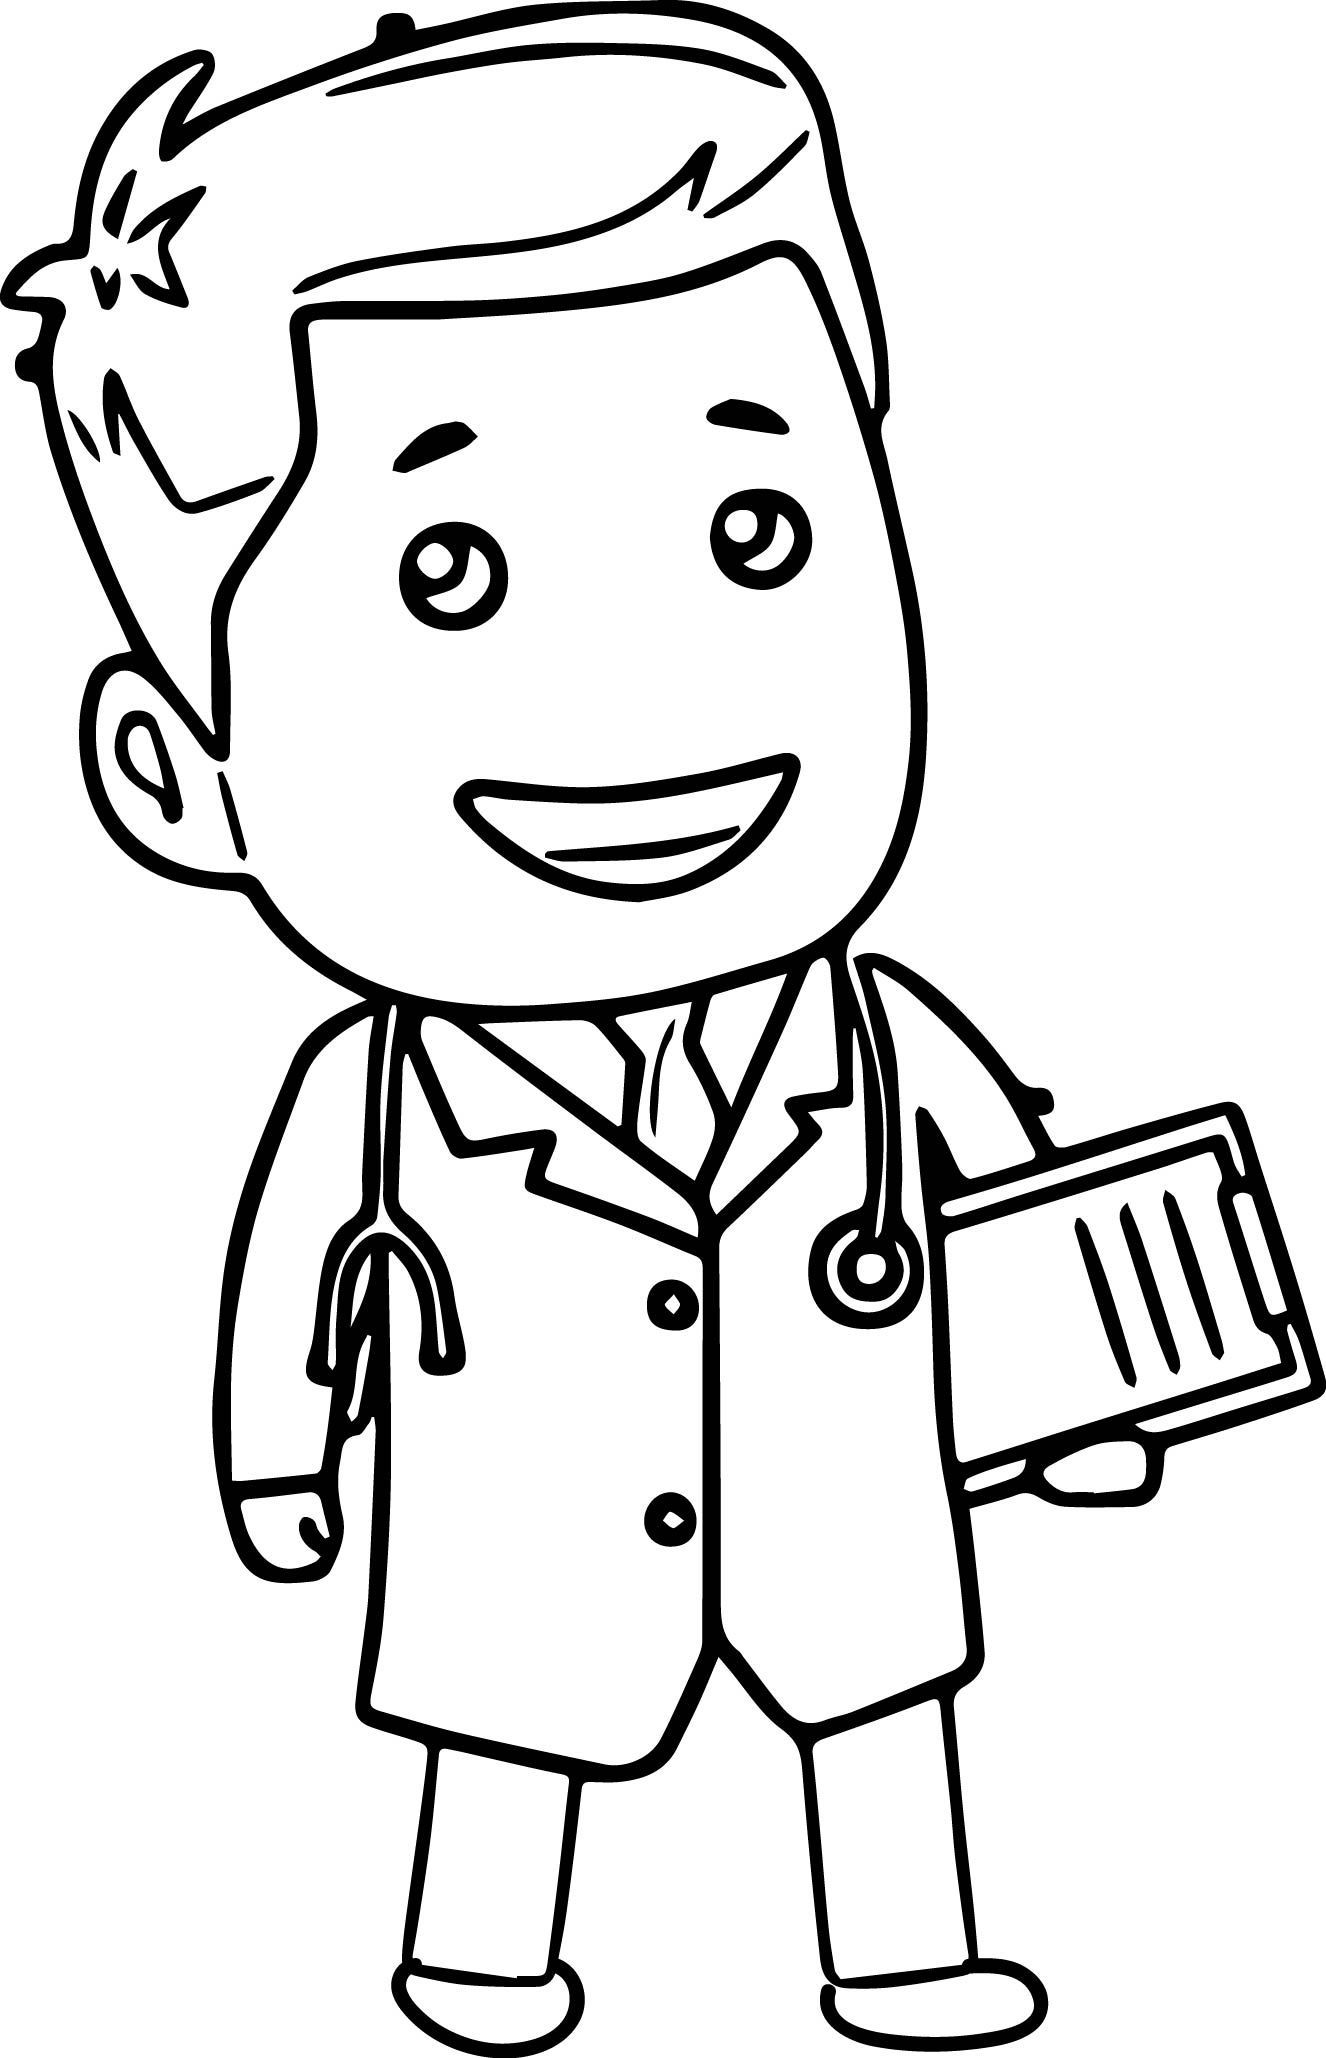 Doctor Tools Clipart Doctor Cartoon Coloring Page Cartoon Coloring Pages Coloring Pages To Print Coloring Pages